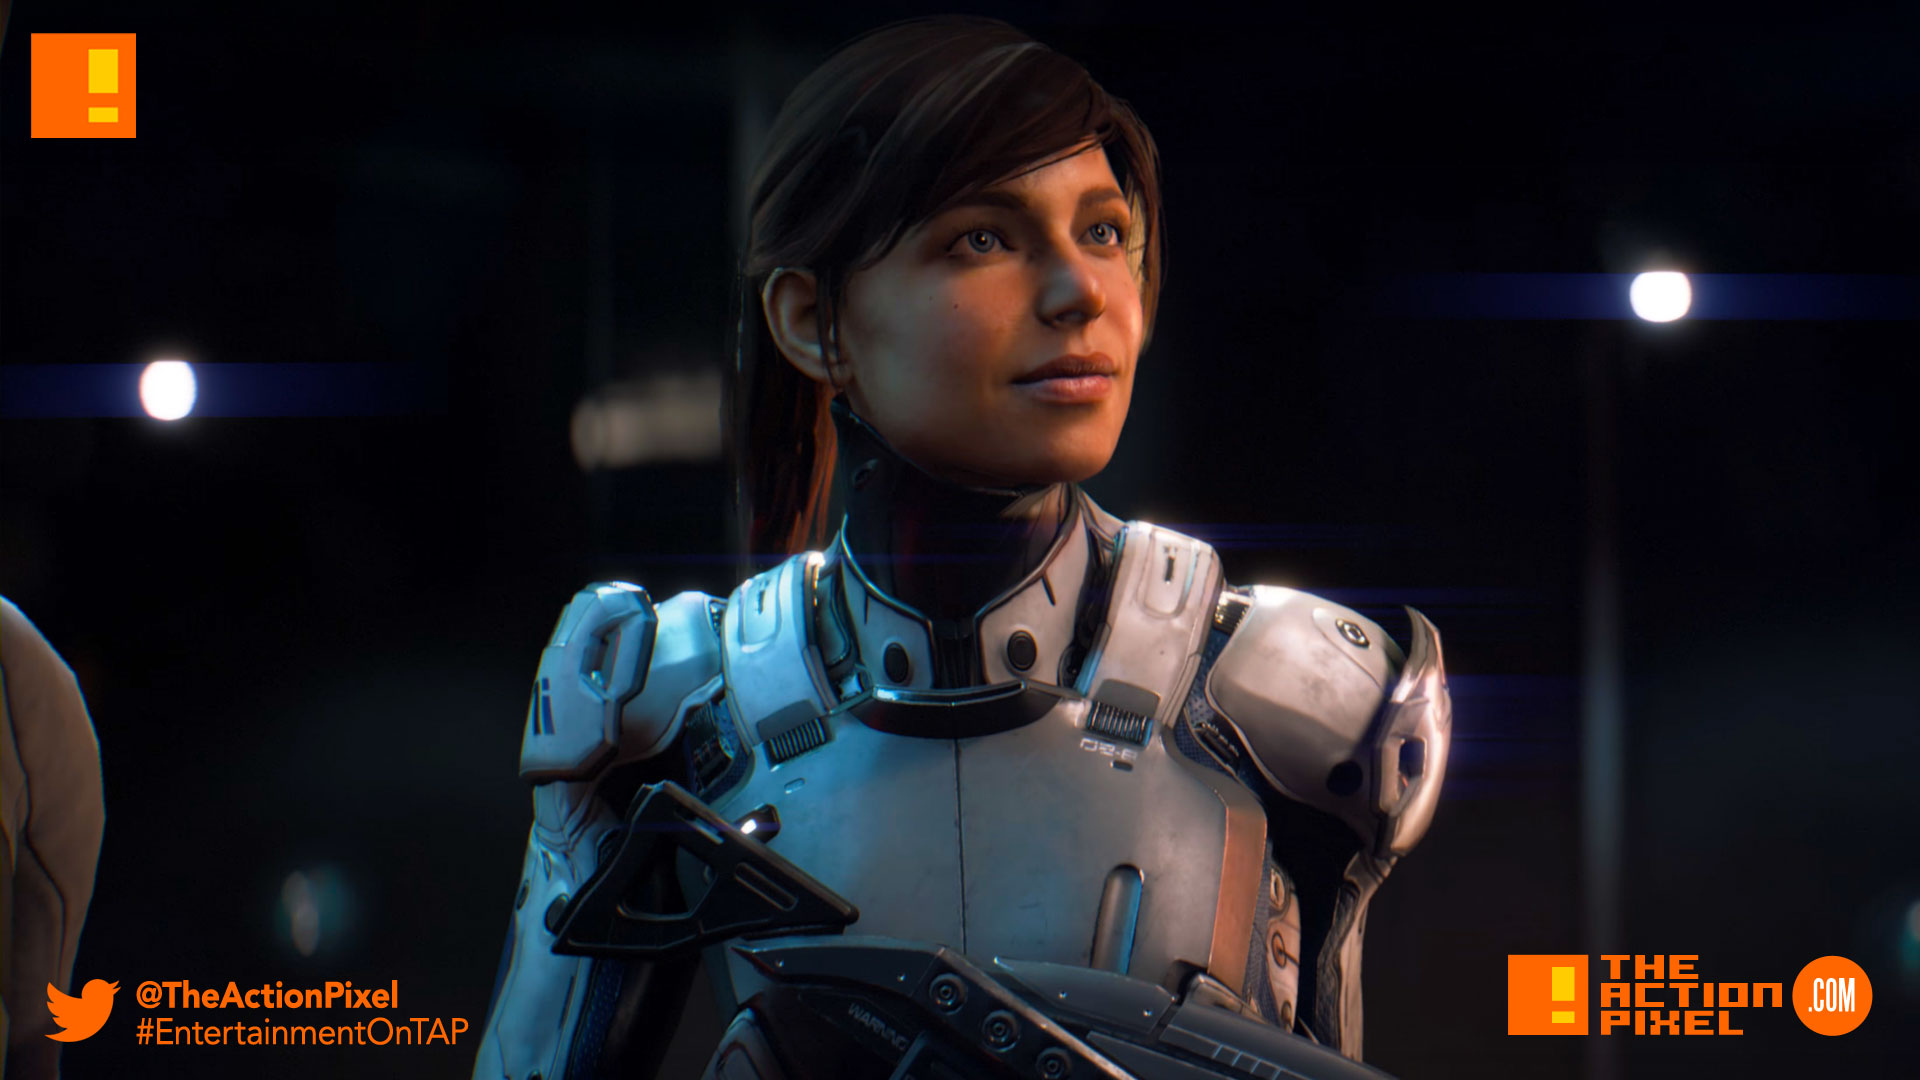 sara ryder, mass effect, mass effect: andromeda, mass effect andromeda, andromeda, bioware, the action pixel, entertainment on tap